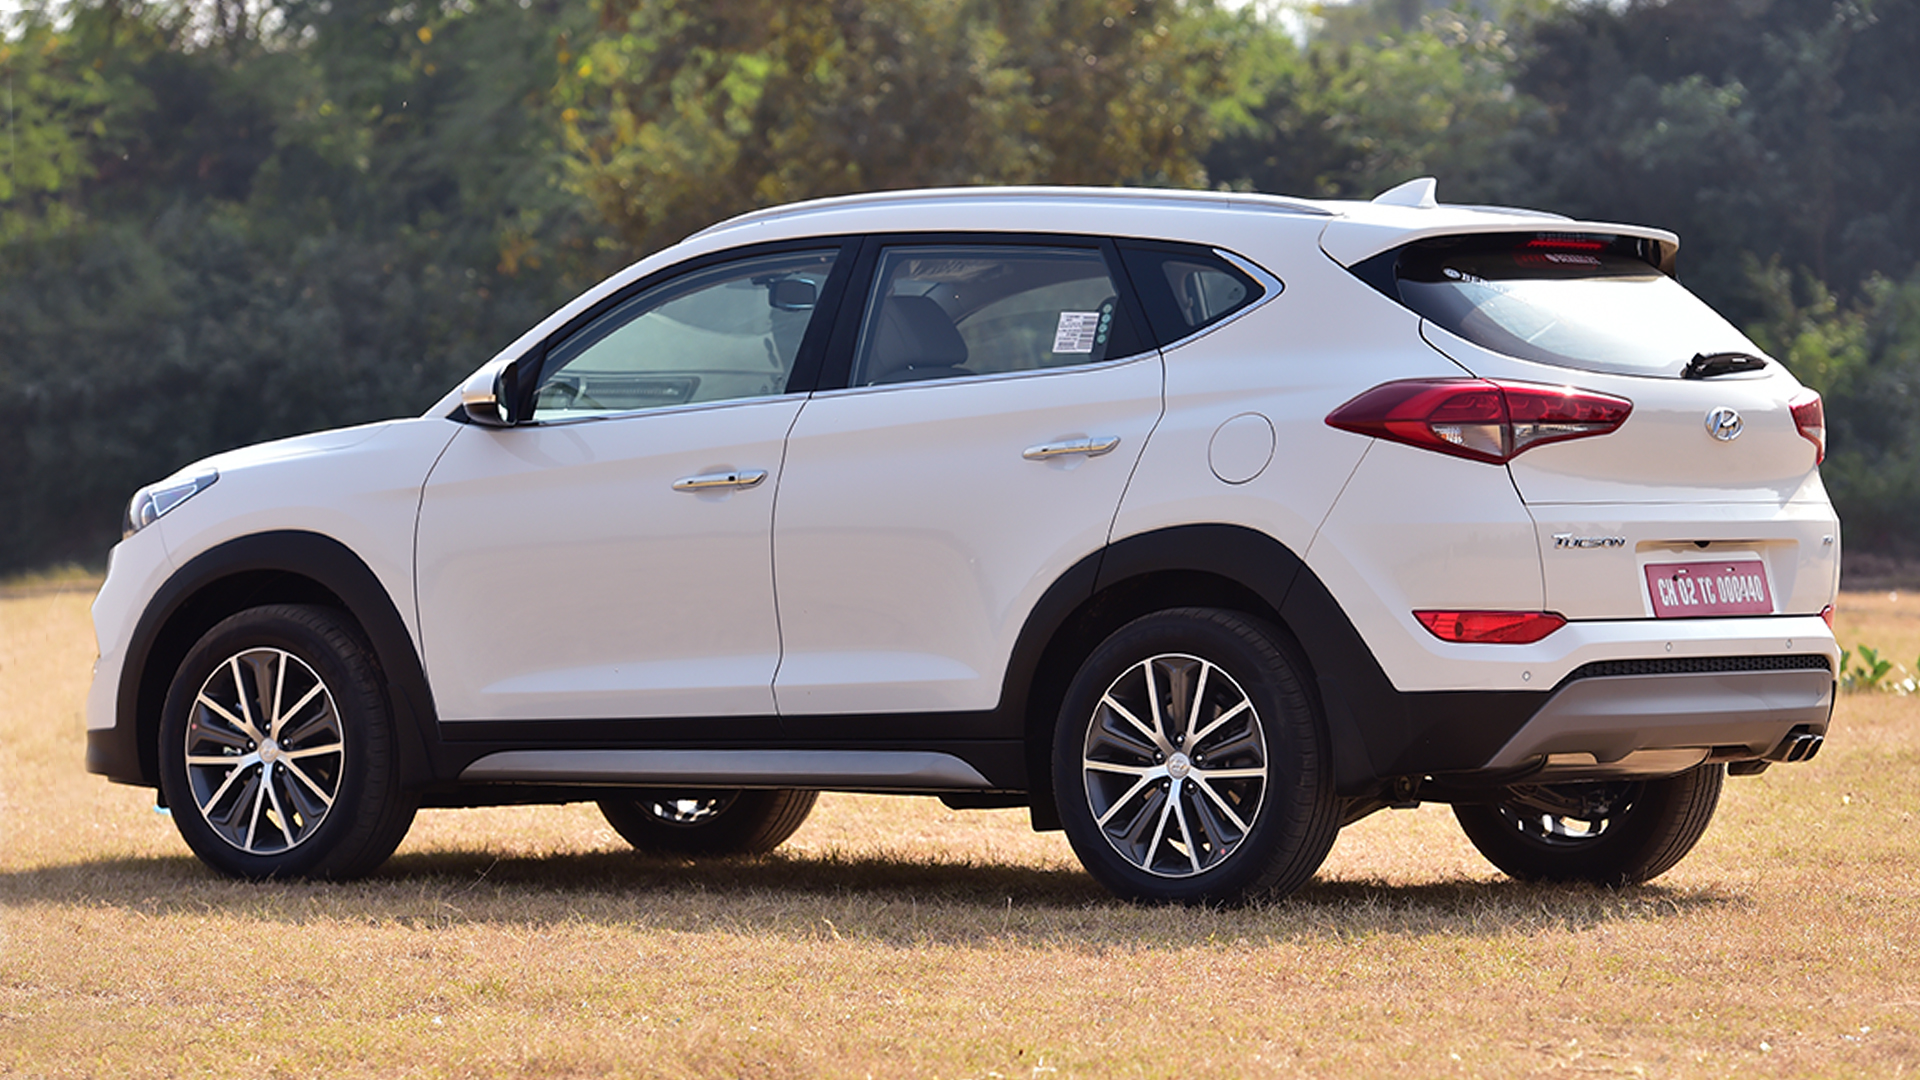 Facelift Tucson 2018 >> Hyundai Tucson 2016 Diesel - Price, Mileage, Reviews, Specification, Gallery - Overdrive